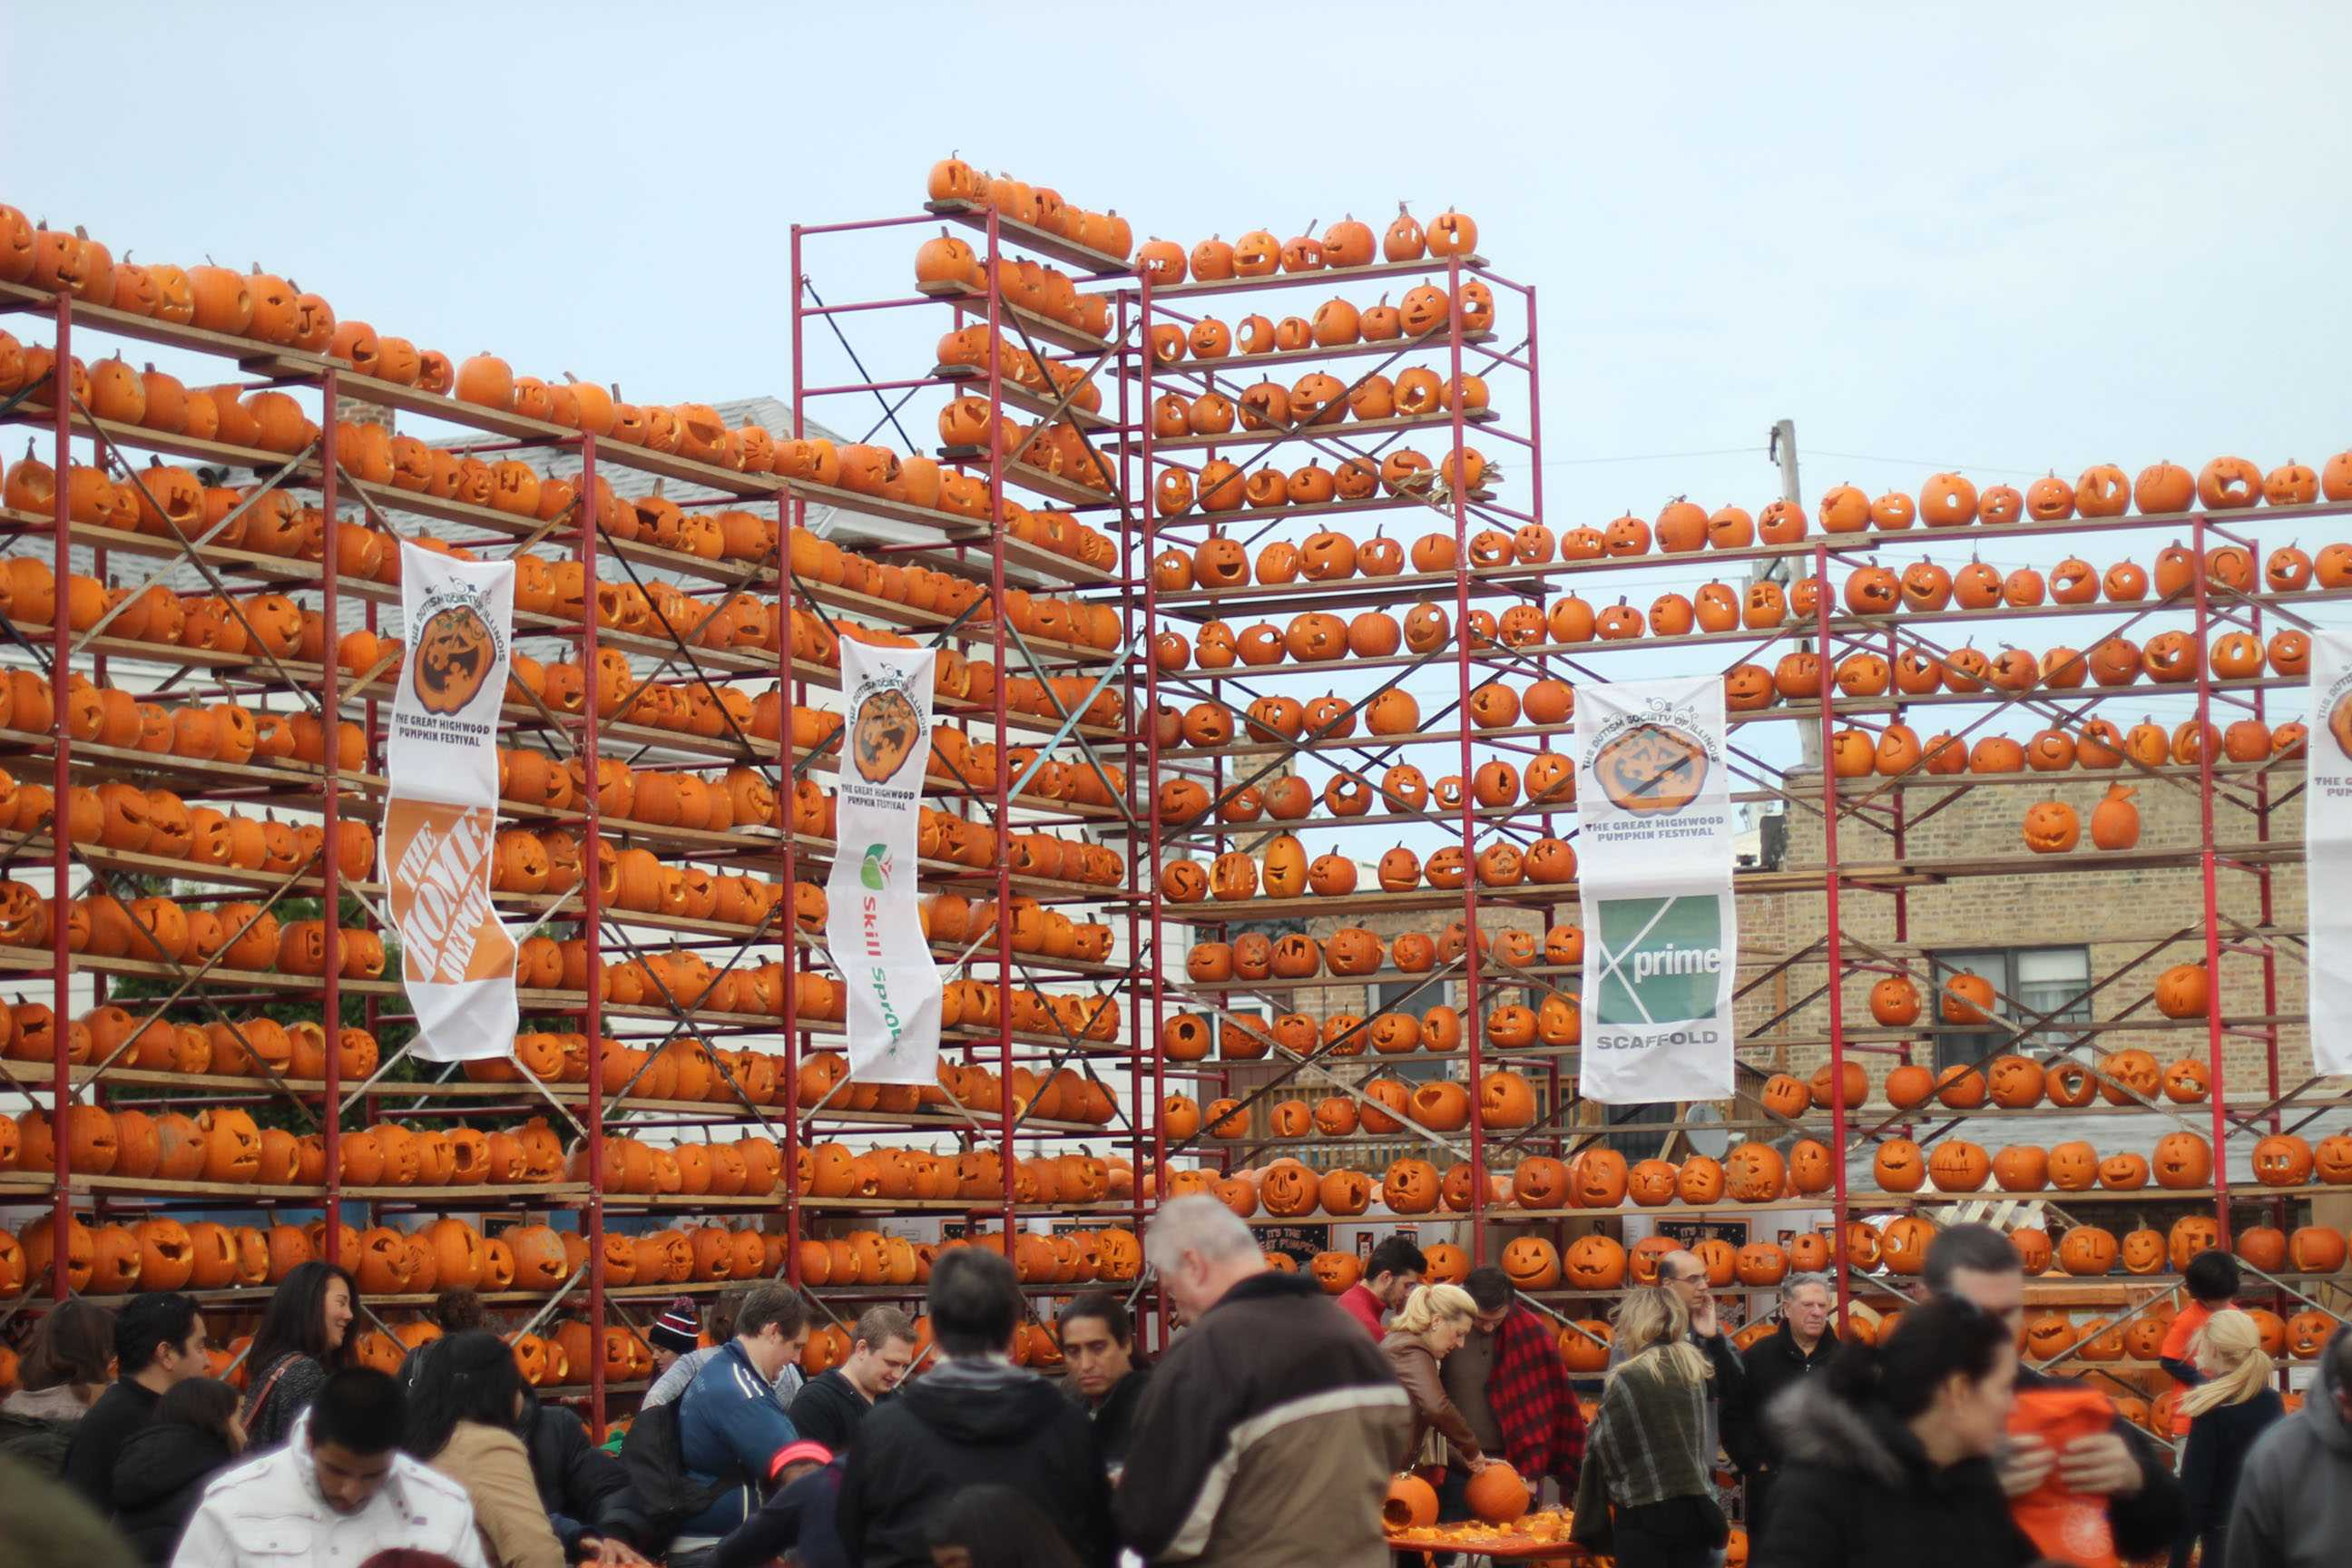 THE GREAT WALL: The 21,000 pumpkins carved during Pumpkin Fest were displayed on racks, some of which soared beyond 50 feet in height. These walls of pumpkins stretched across the festival grounds. During the nightly lighting ceremonies, spectators watched as these walls were illuminated with carved faces, shapes and symbols.